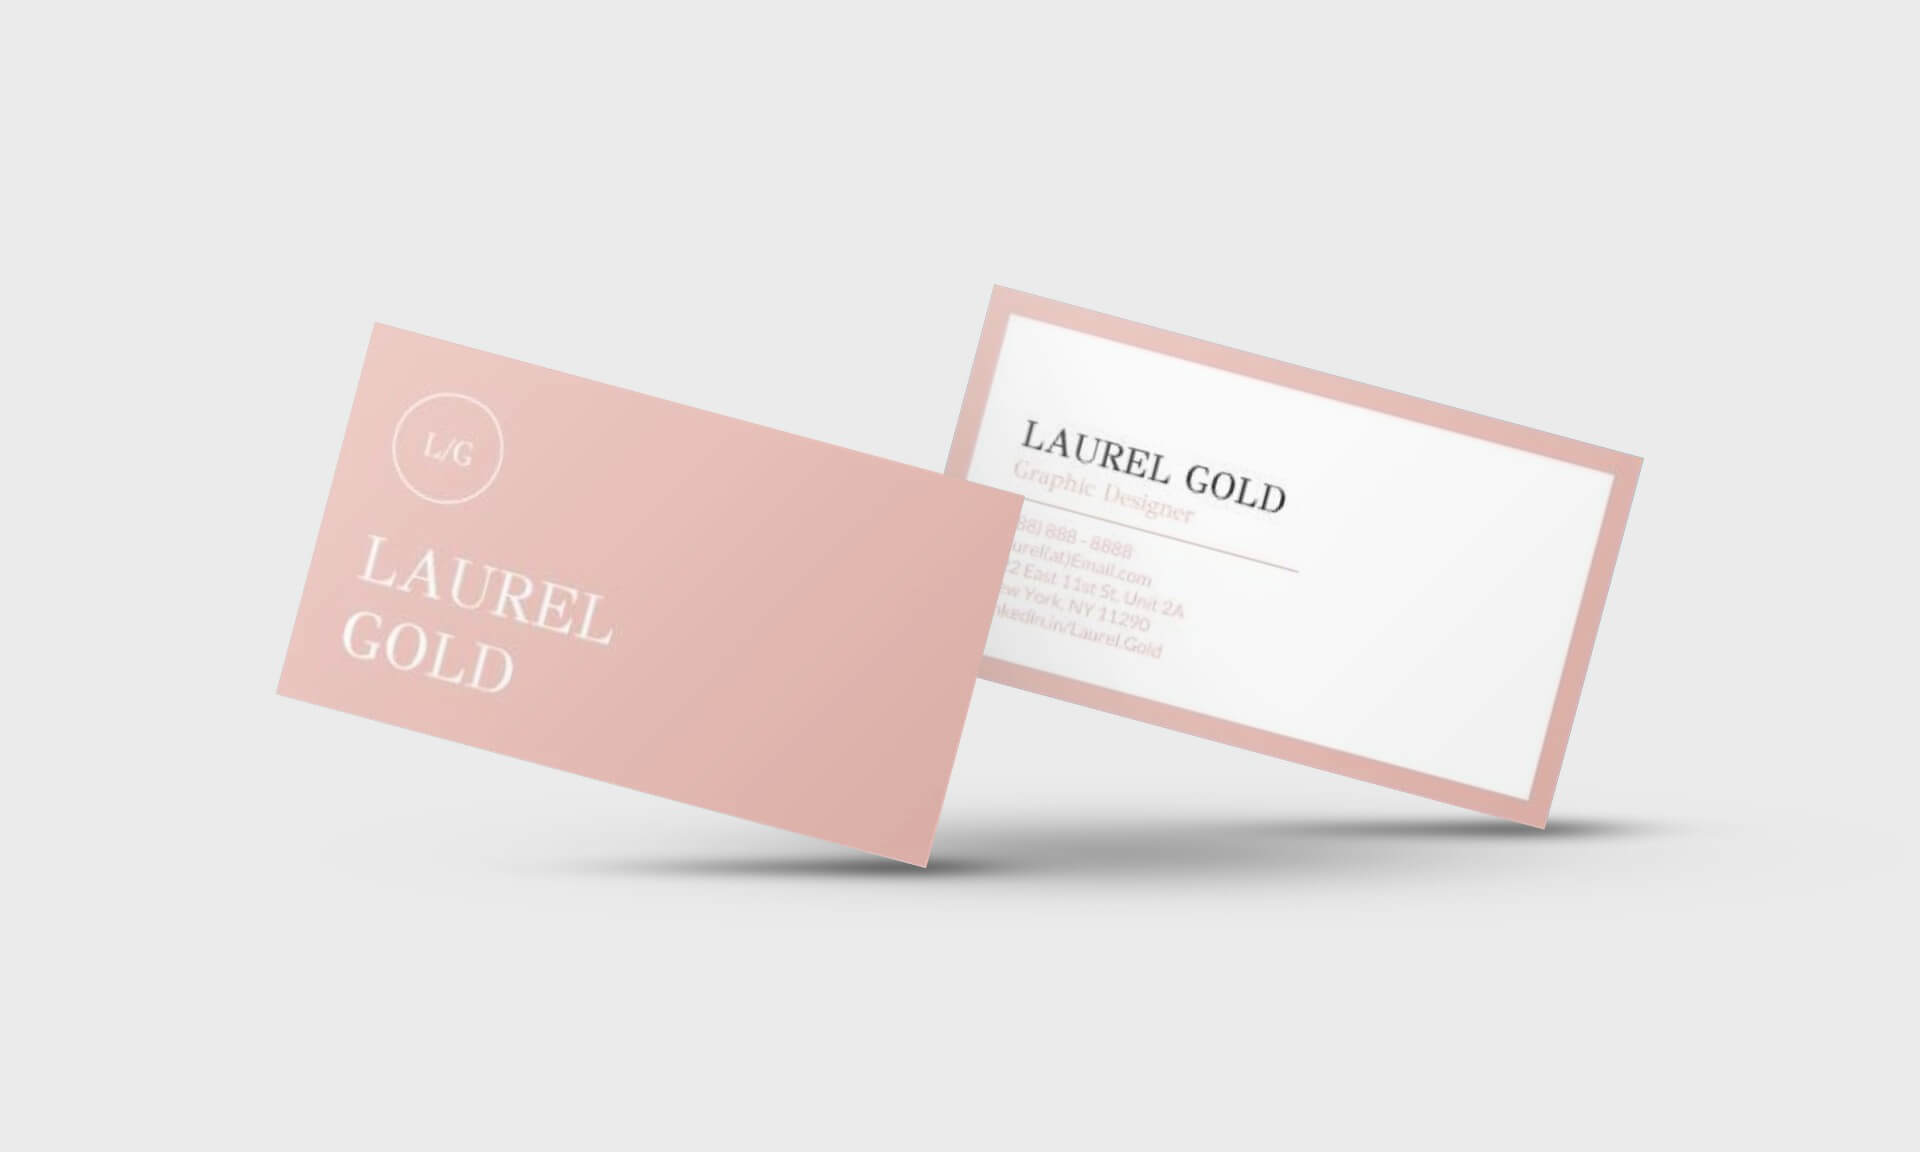 Laurel Gold Google Docs Business Card Template - Stand Out Shop Regarding Business Card Template For Google Docs